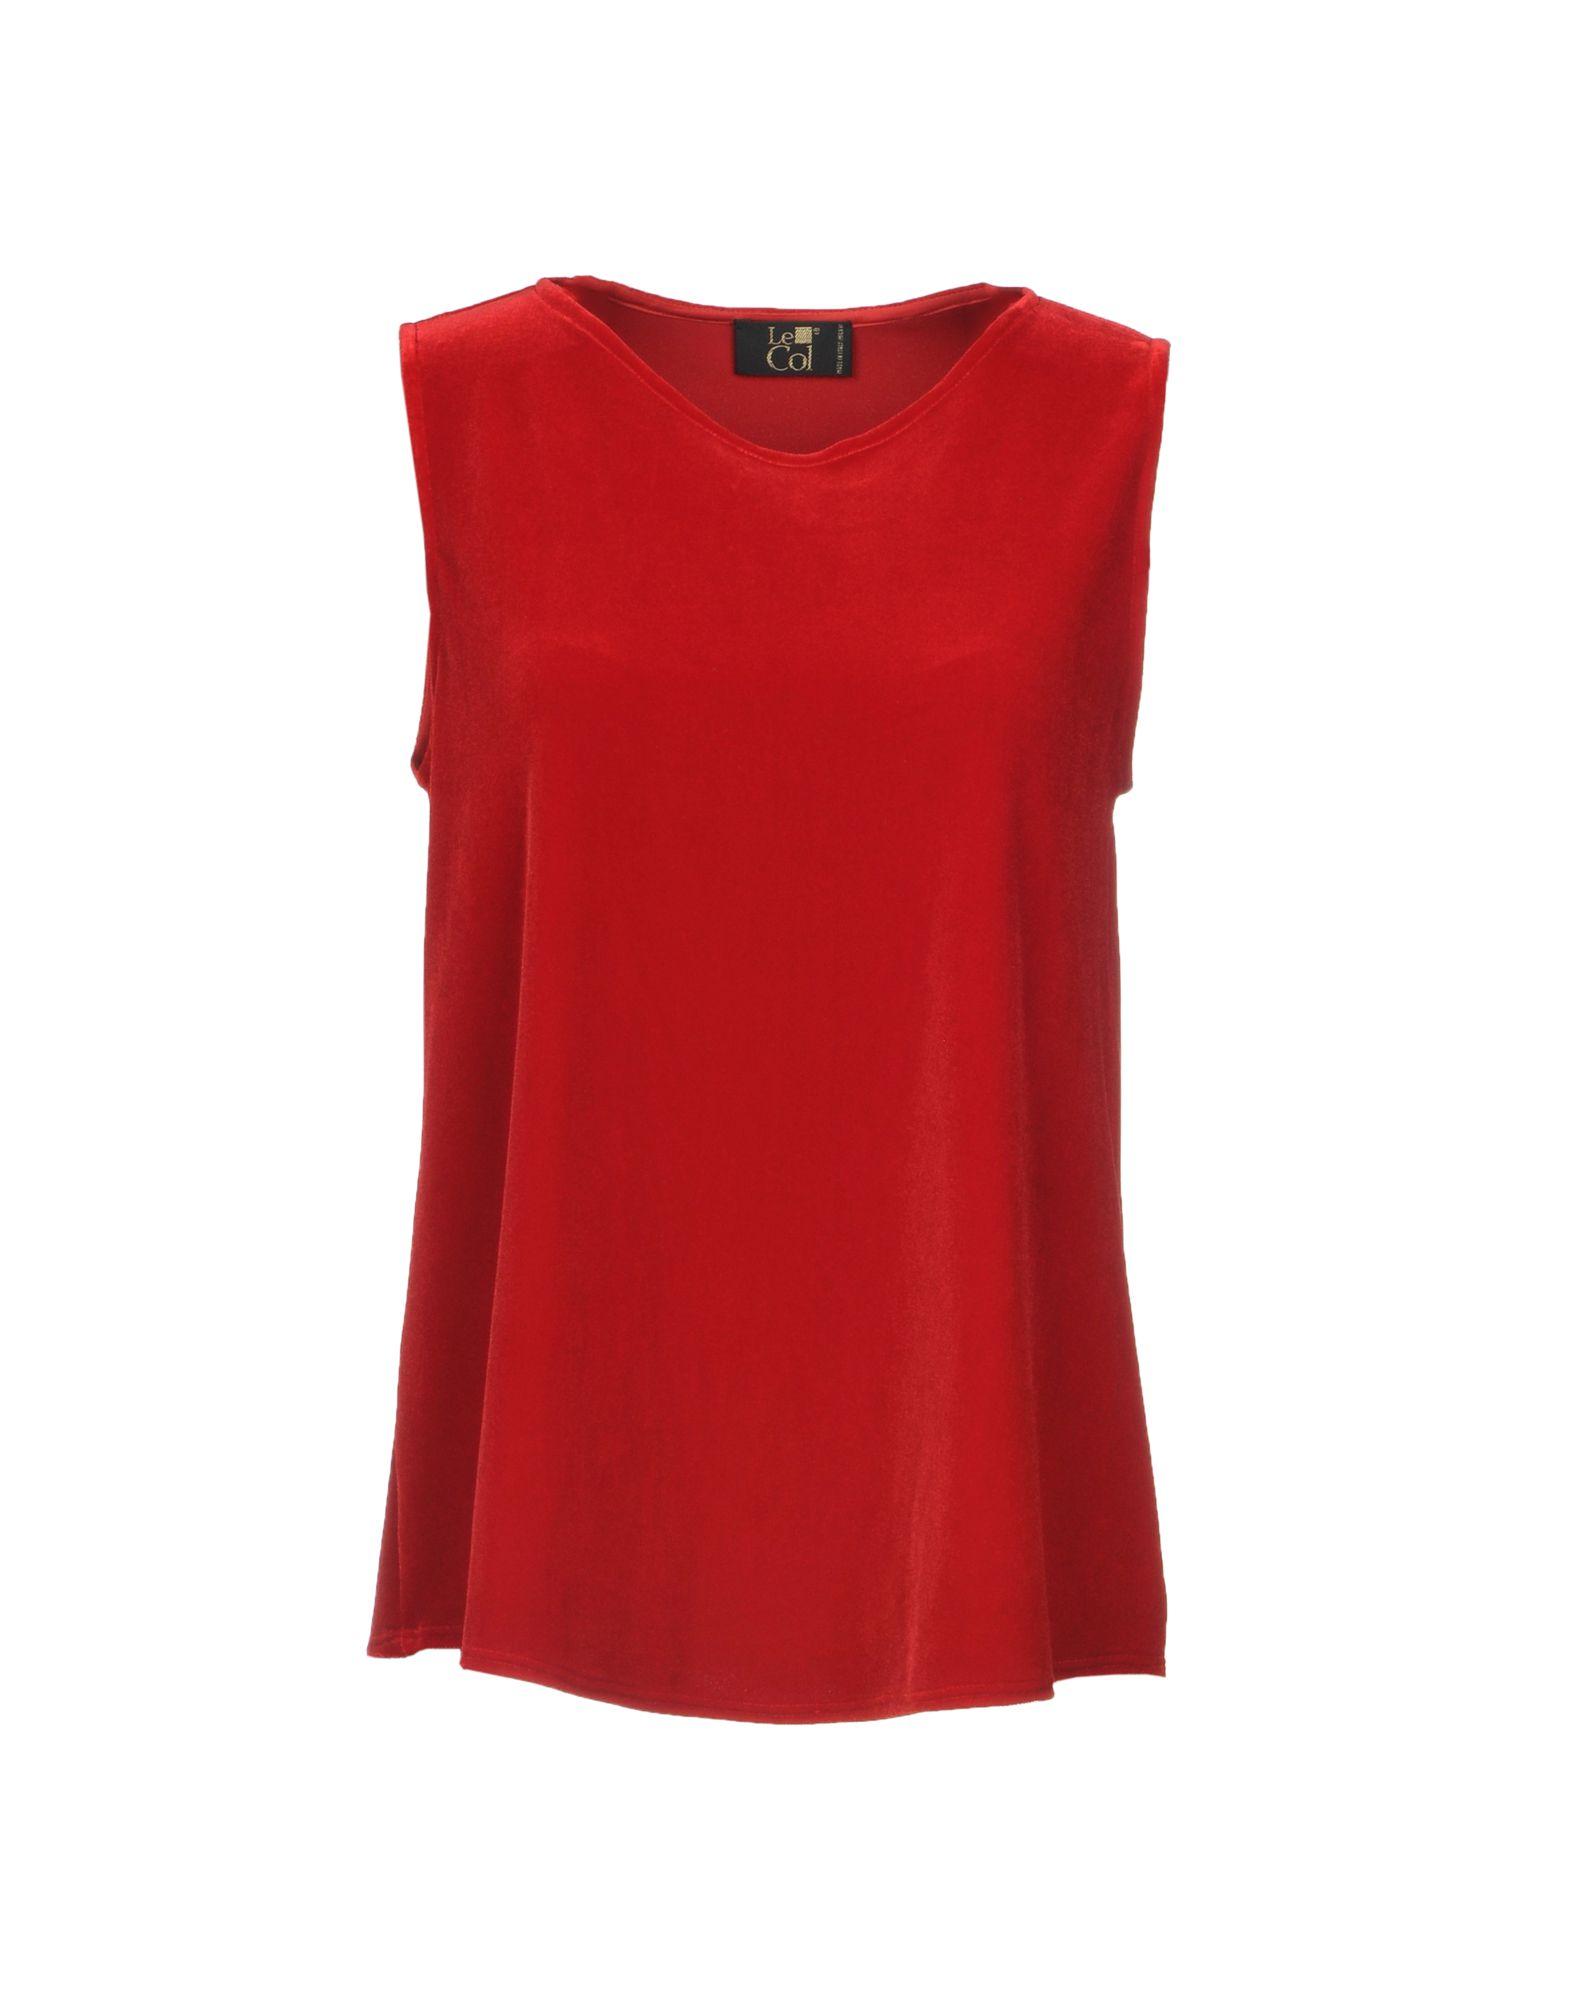 LE COL Top in Red